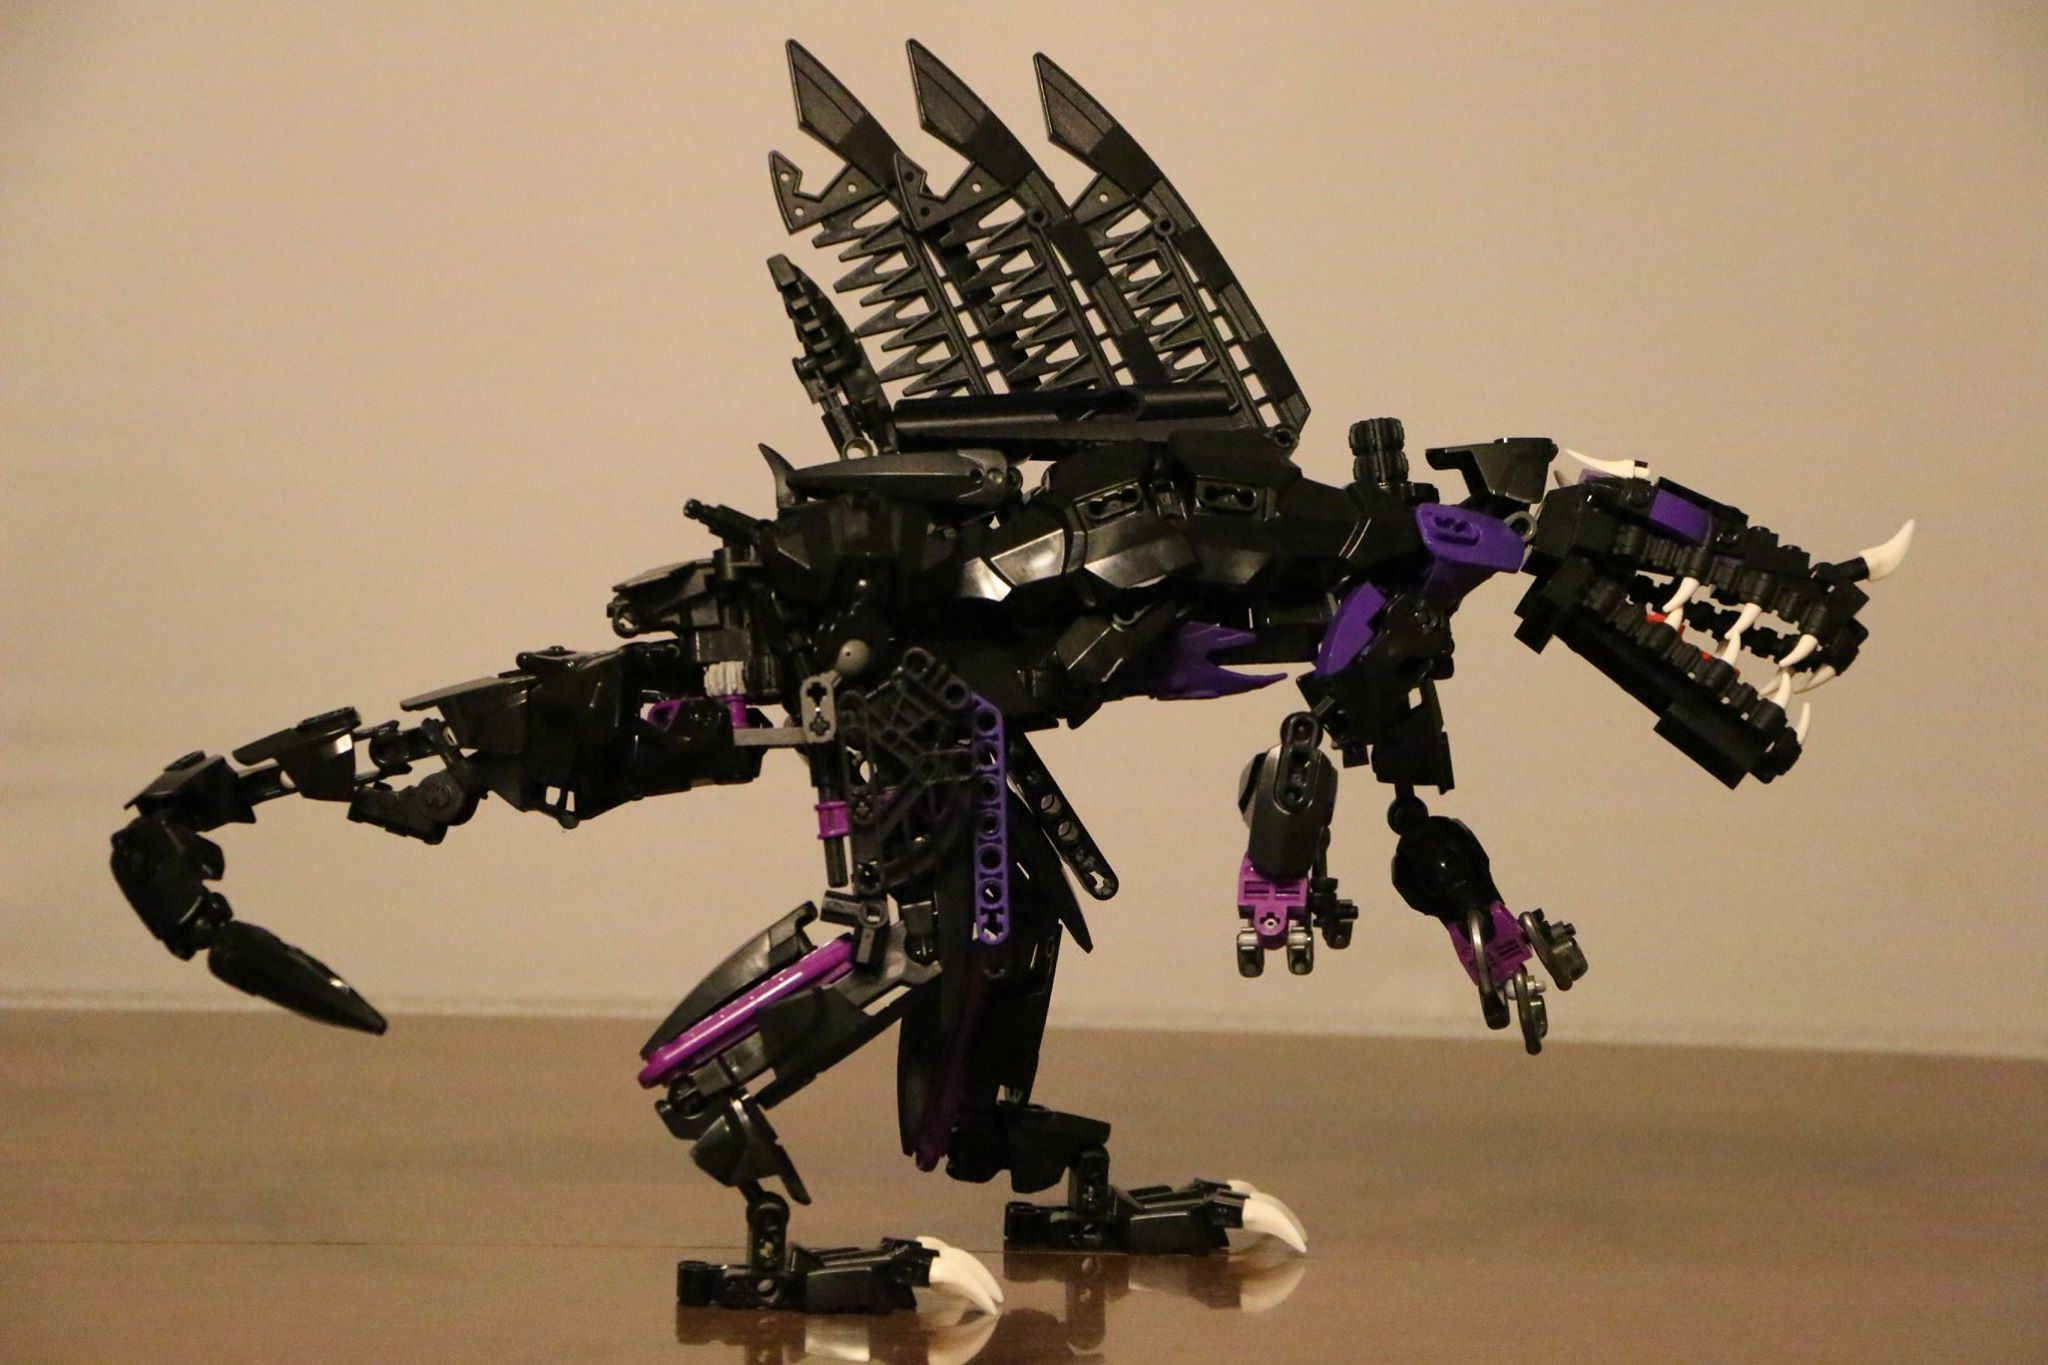 Bionicle spinosaurus lego creations the ttv message boards - Lego dinosaurs spinosaurus ...